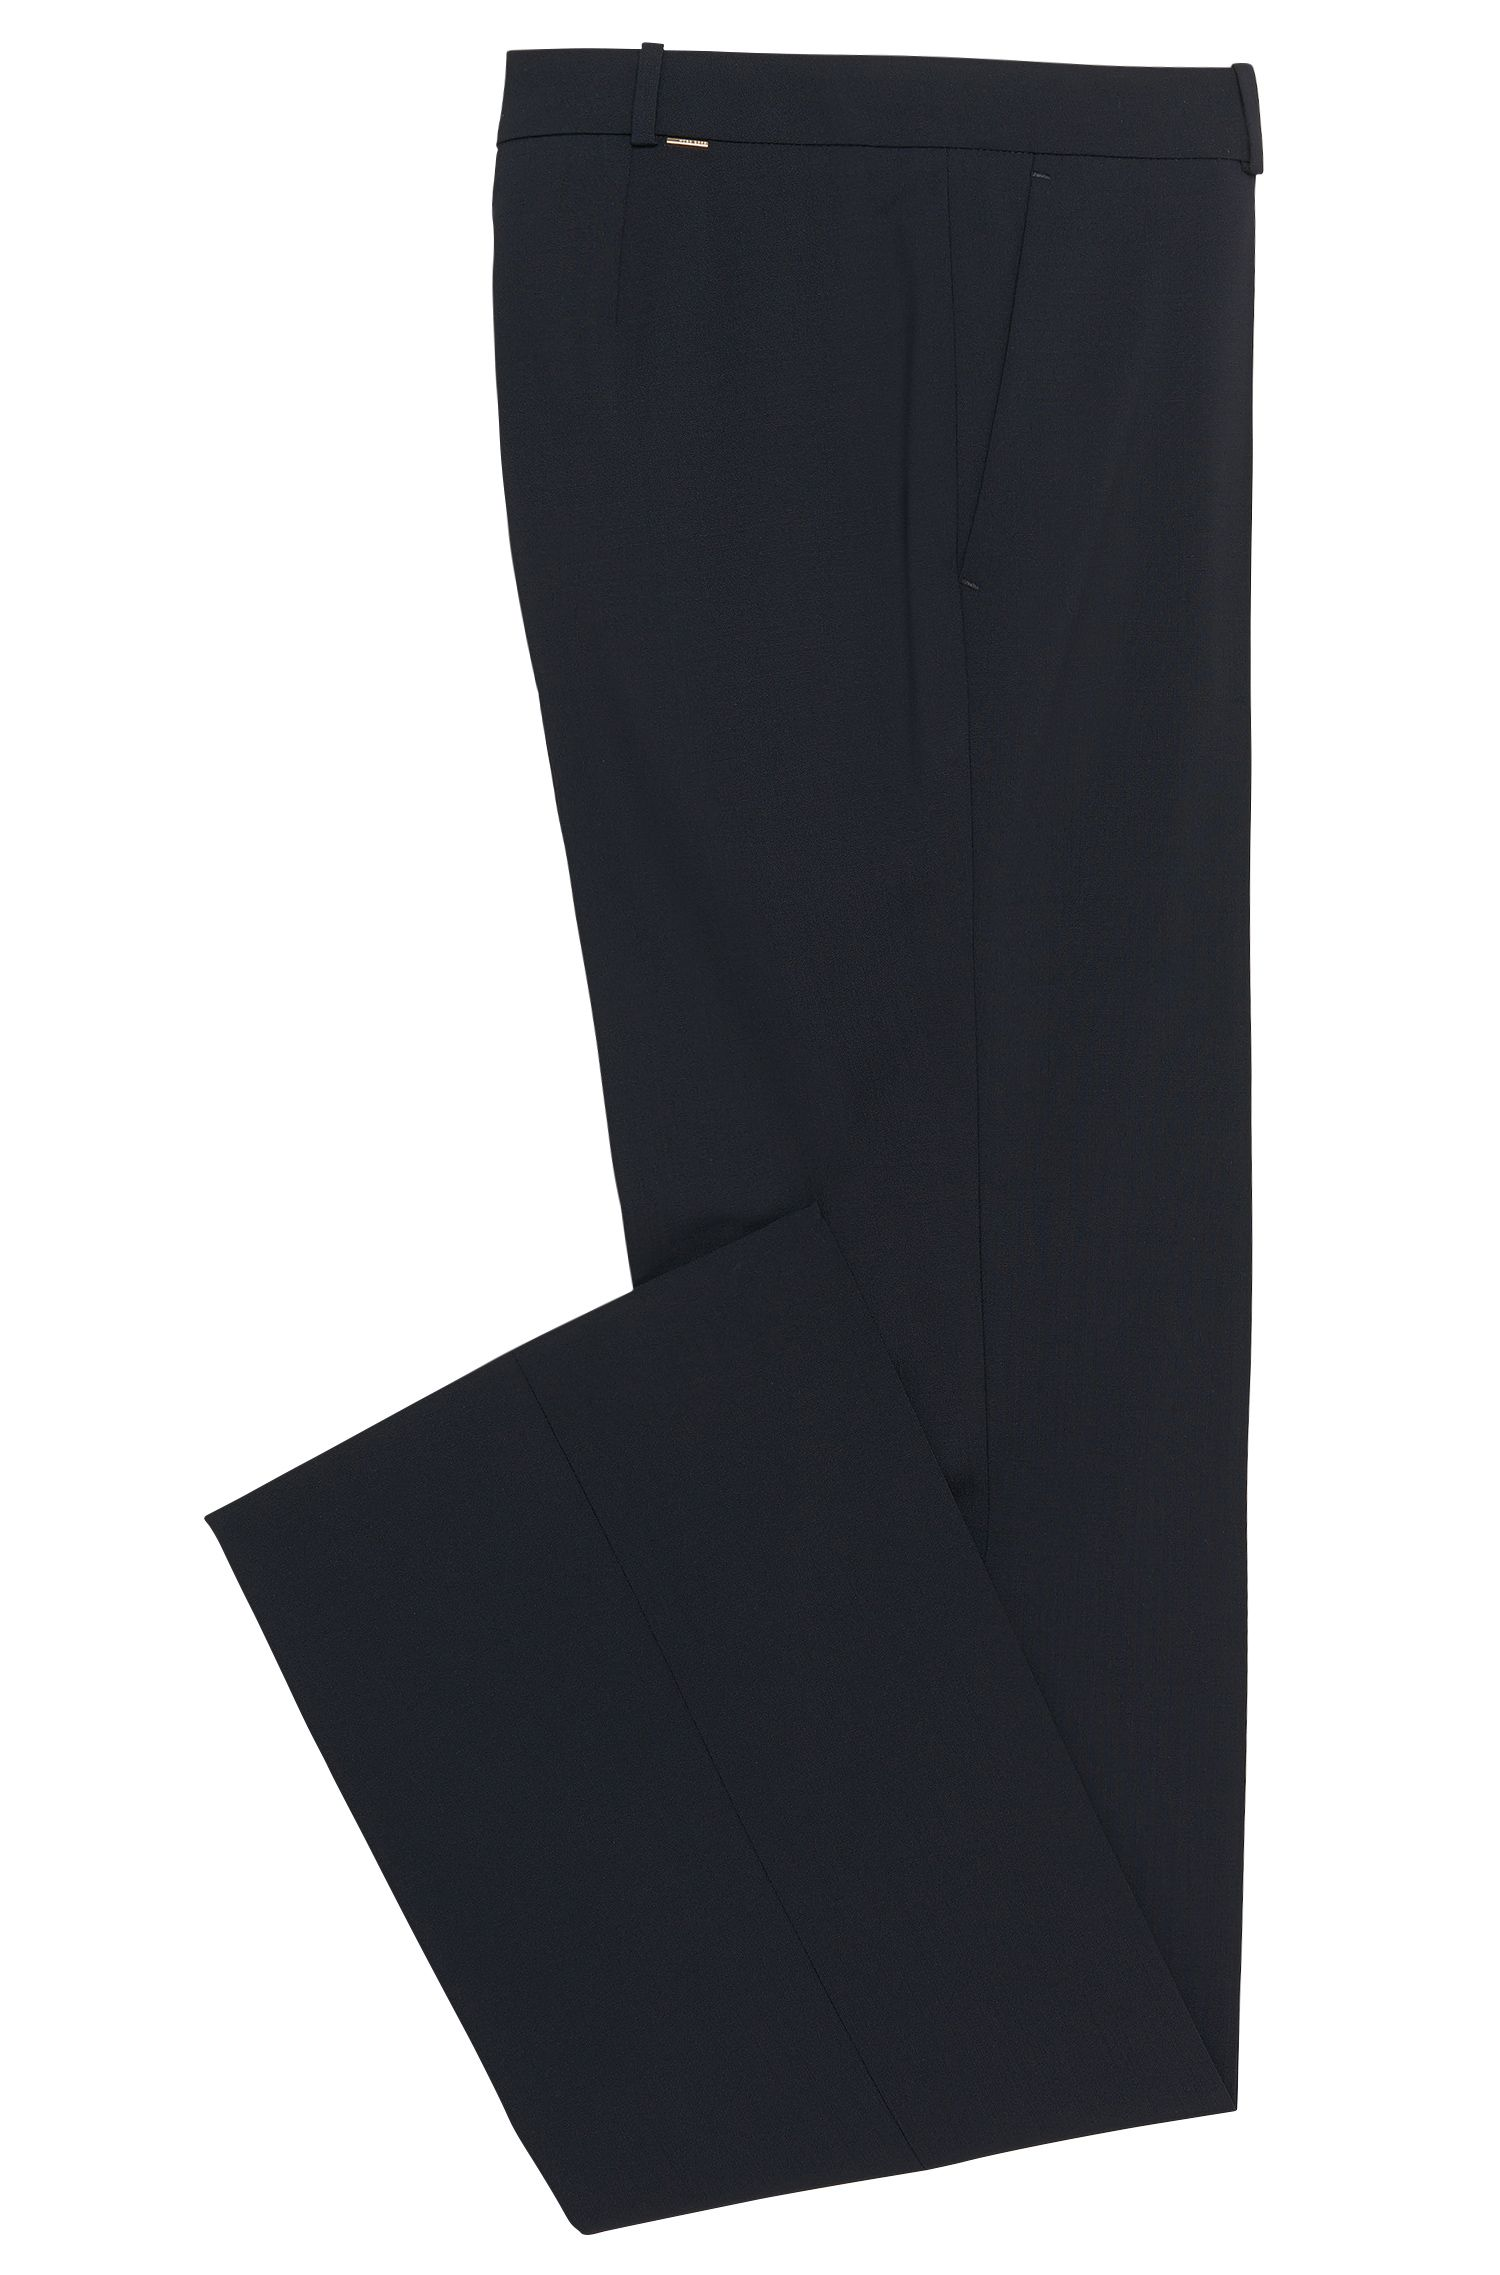 Stretch Virgin Wool Boot Cut Dress Pant | Tulea